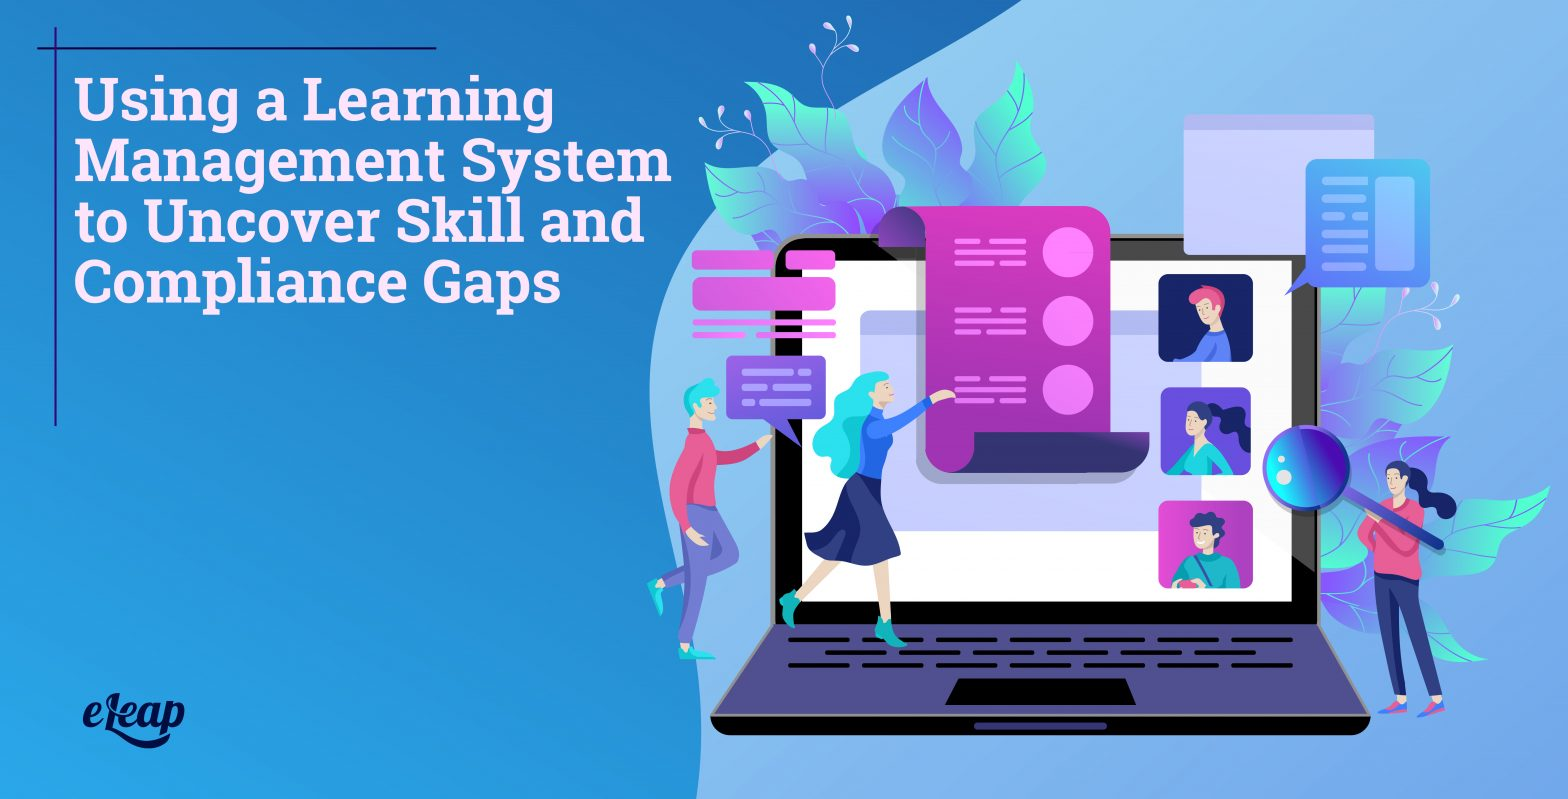 Using a Learning Management System to Uncover Skill and Compliance Gaps